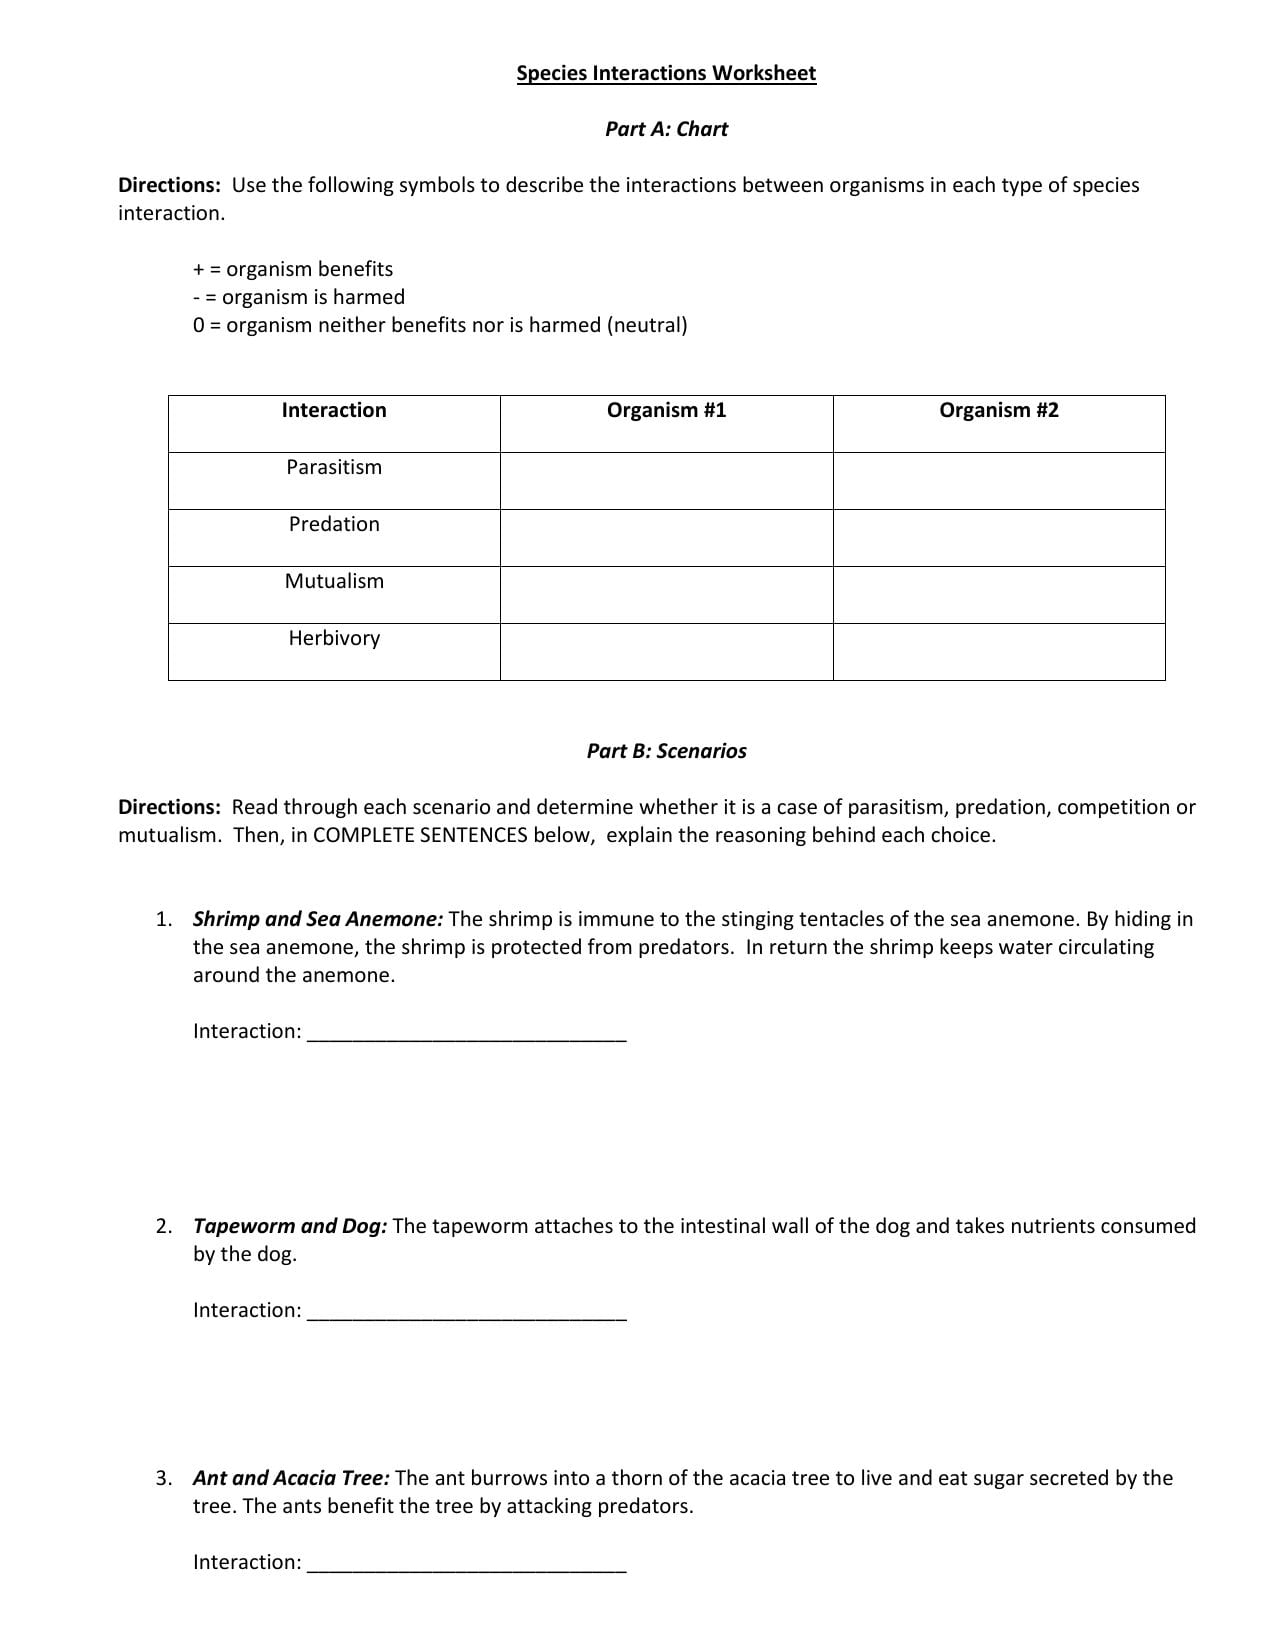 Species Interactions Worksheet Answers